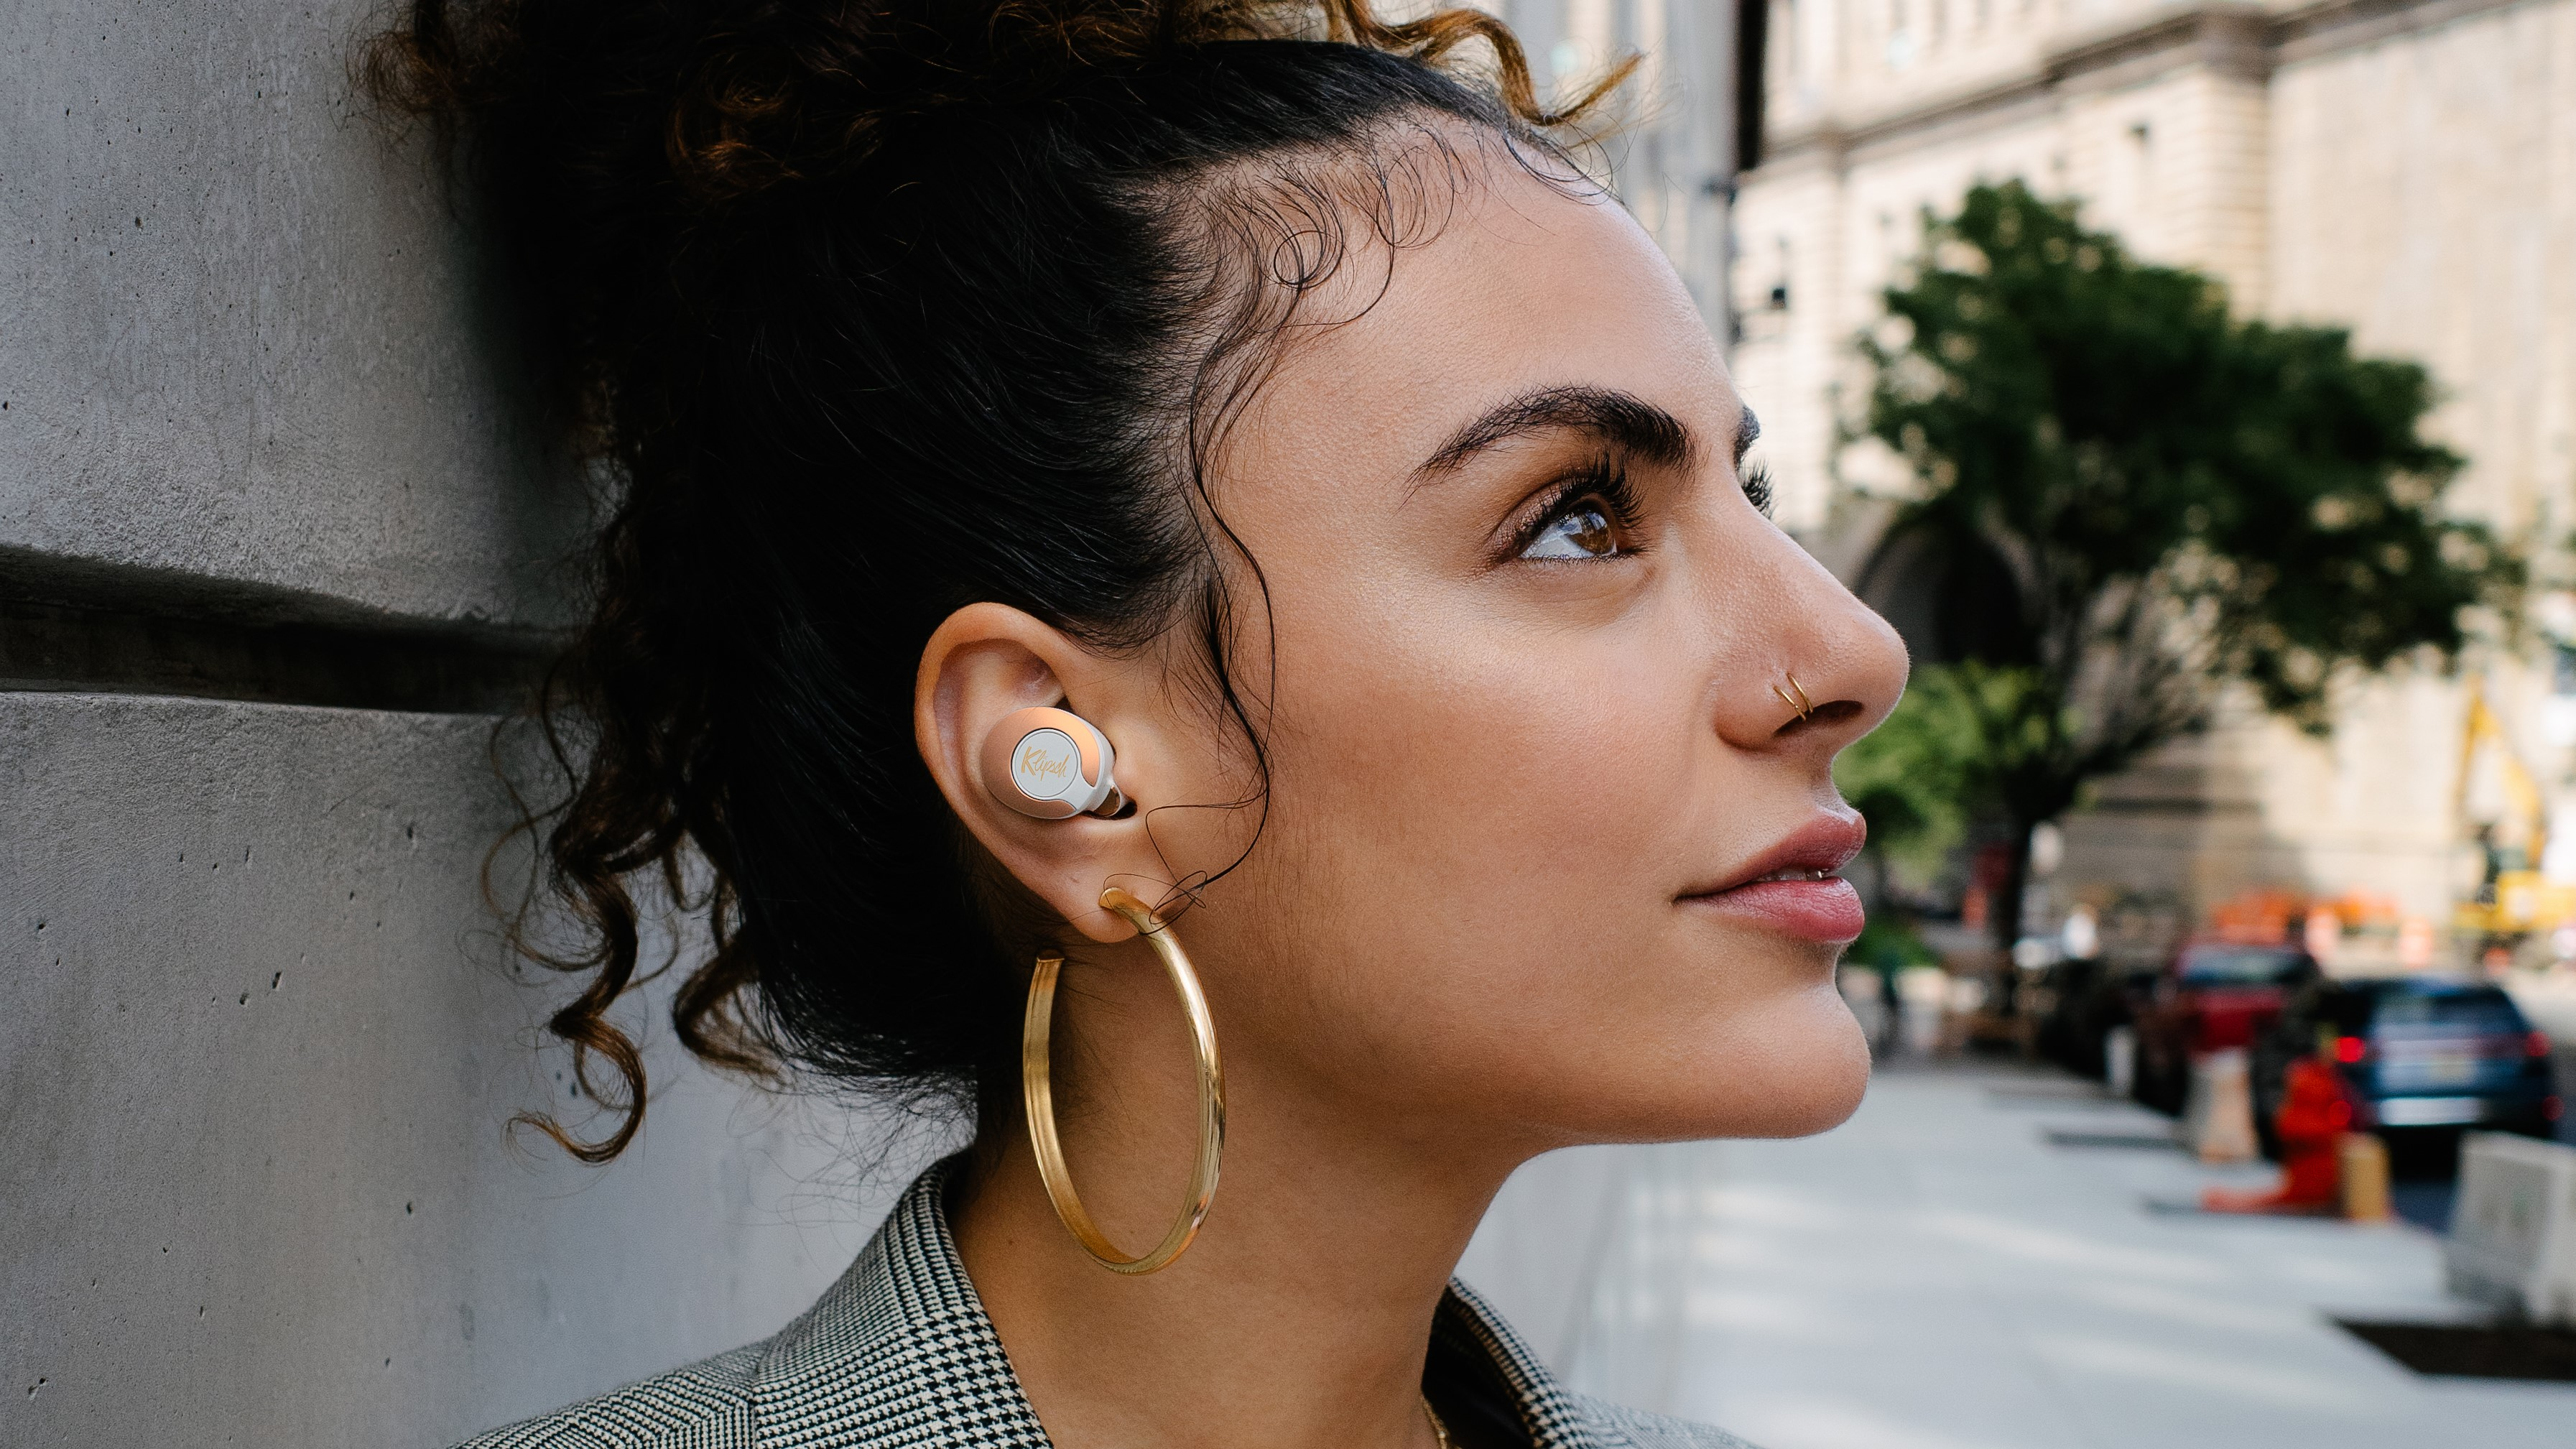 Sony WF-1000XM4 could get dethroned by these new true wireless earbuds |  TechRadar